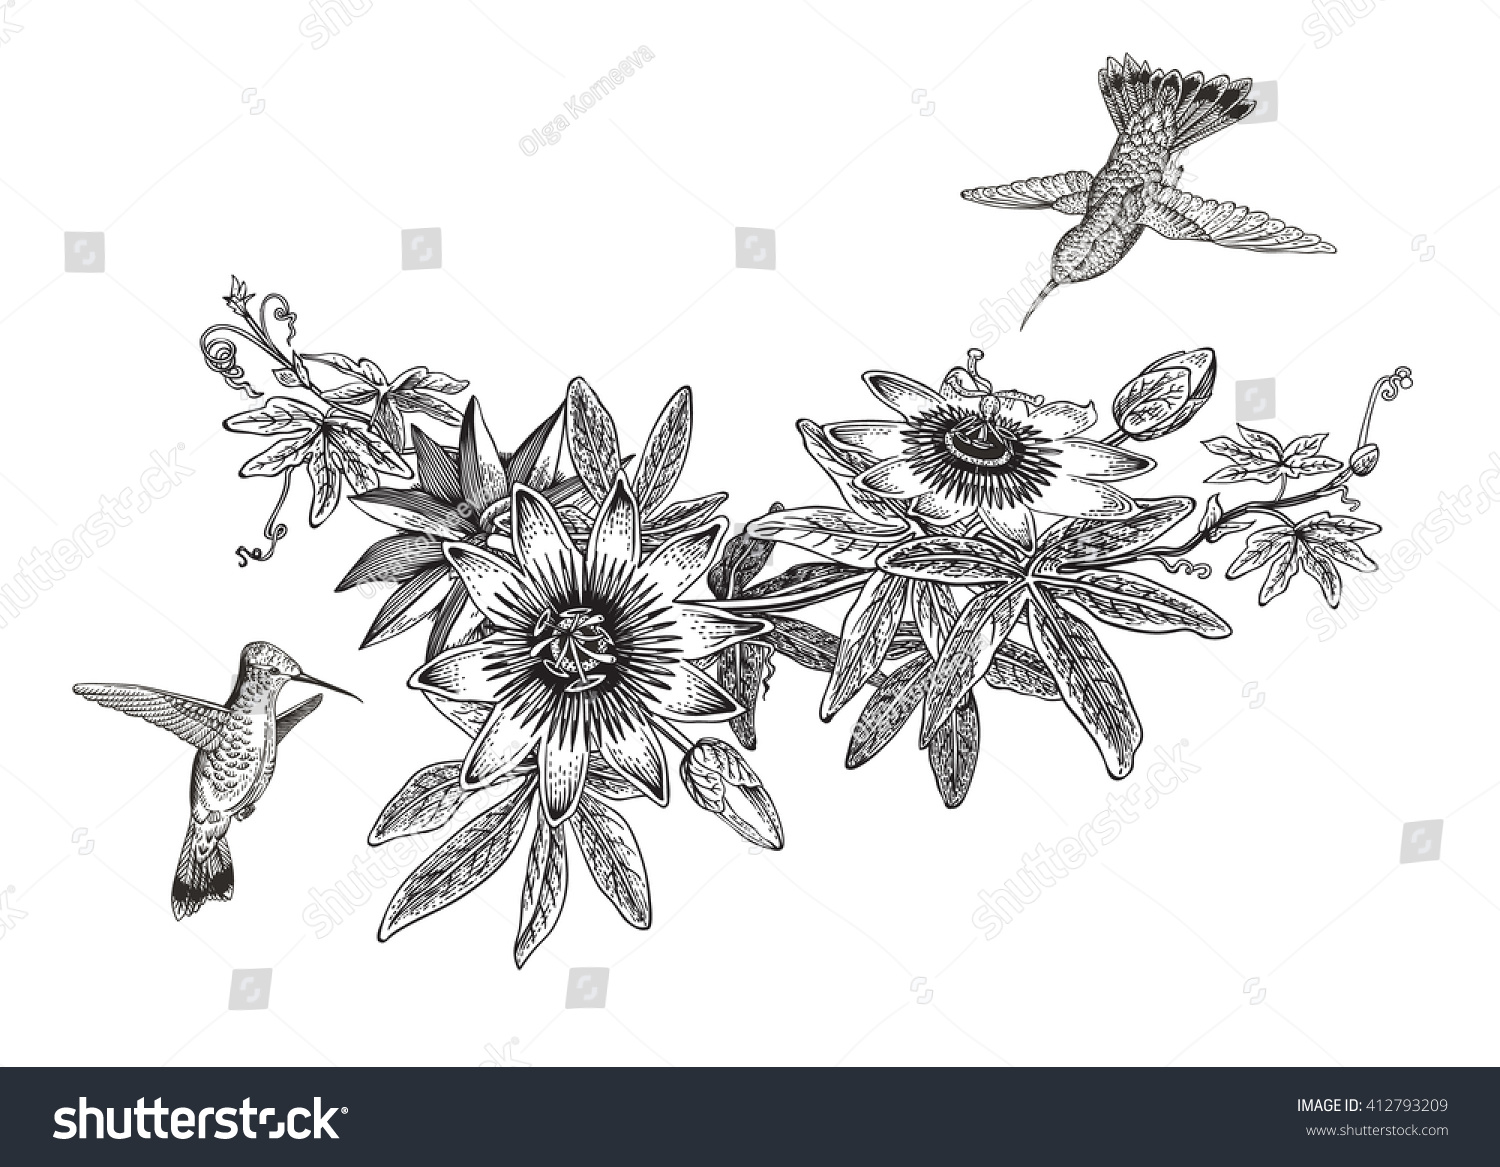 Botanical illustration black and white - photo#10